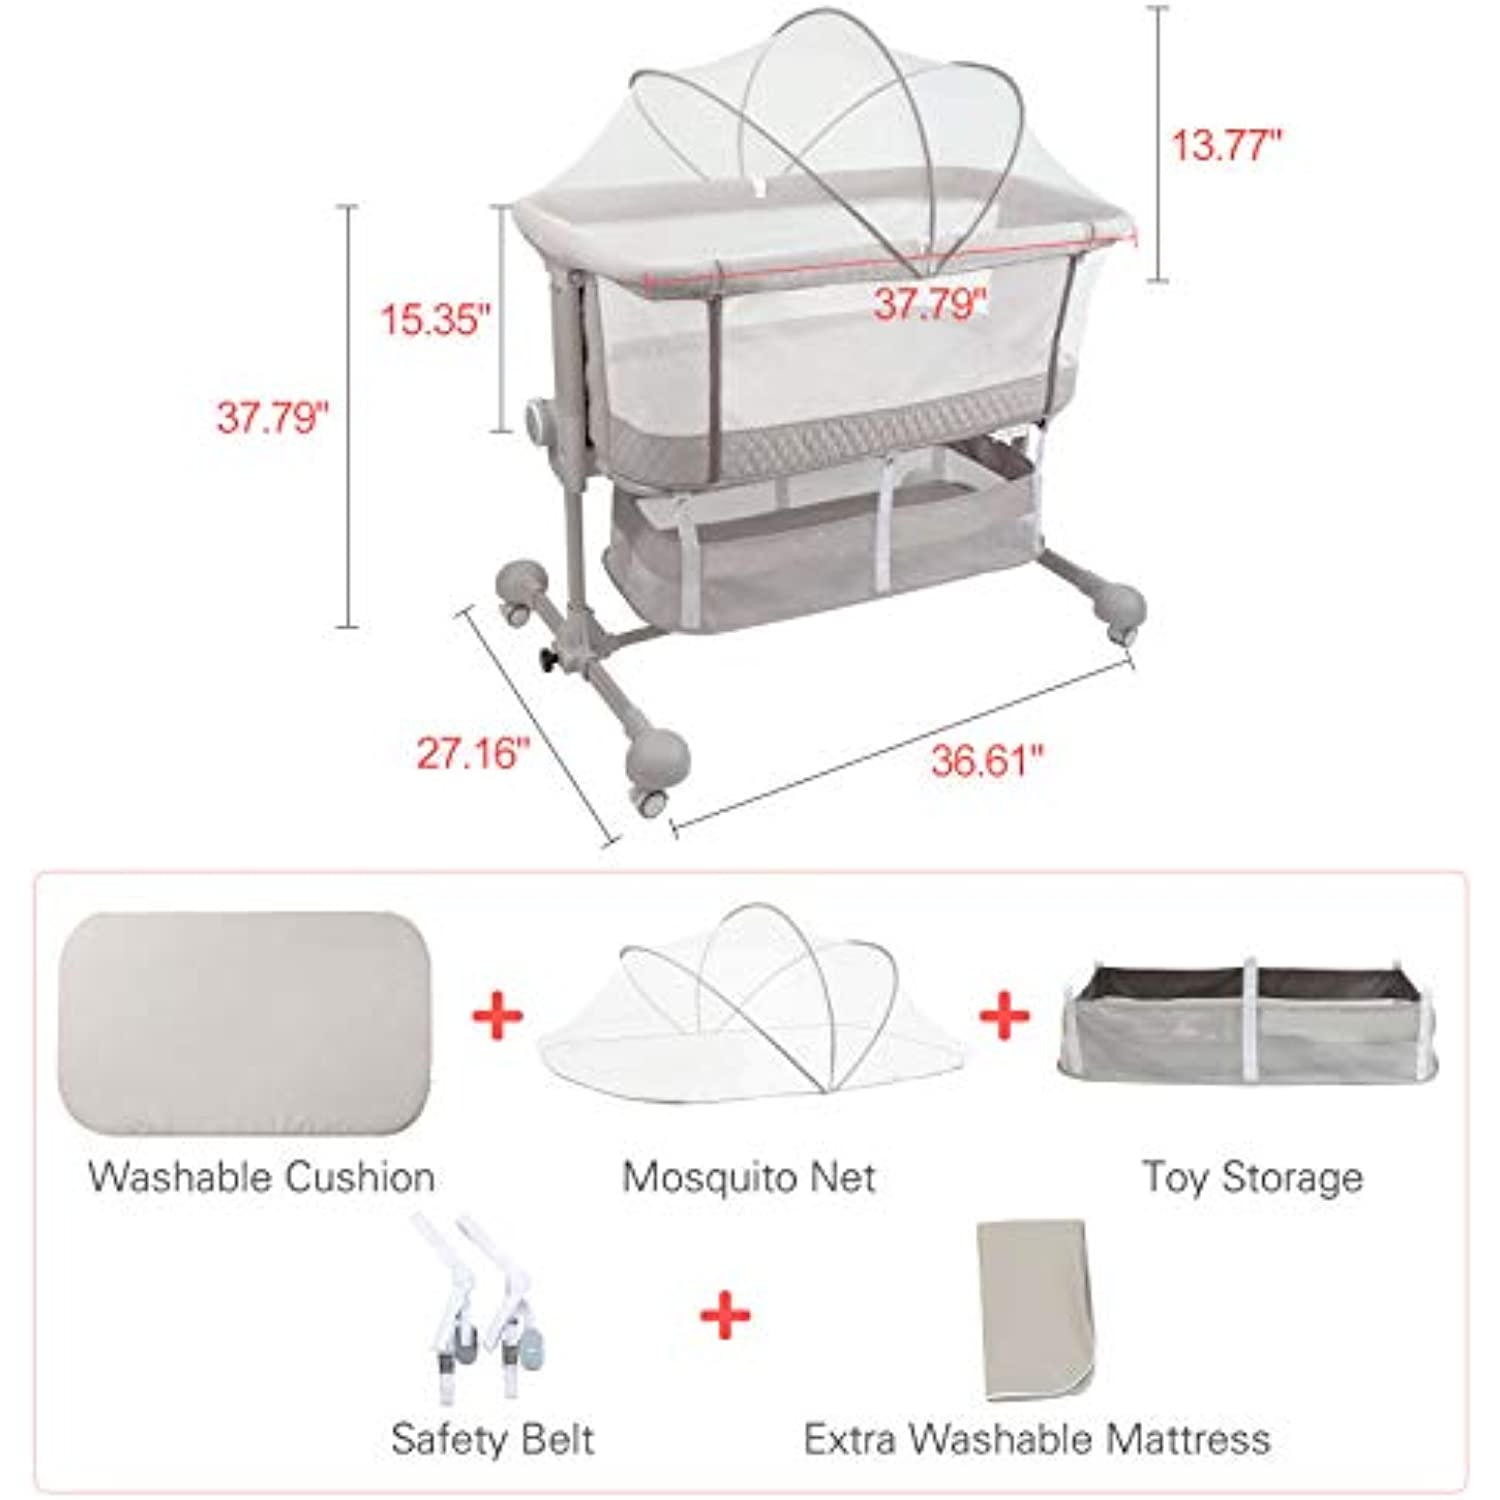 HAHASOLE Bedside Sleeper Baby Bed Cribs, Bassinet for Newborn Baby, Adjustable Portable Bed with Mattress Included and Height Adjustable